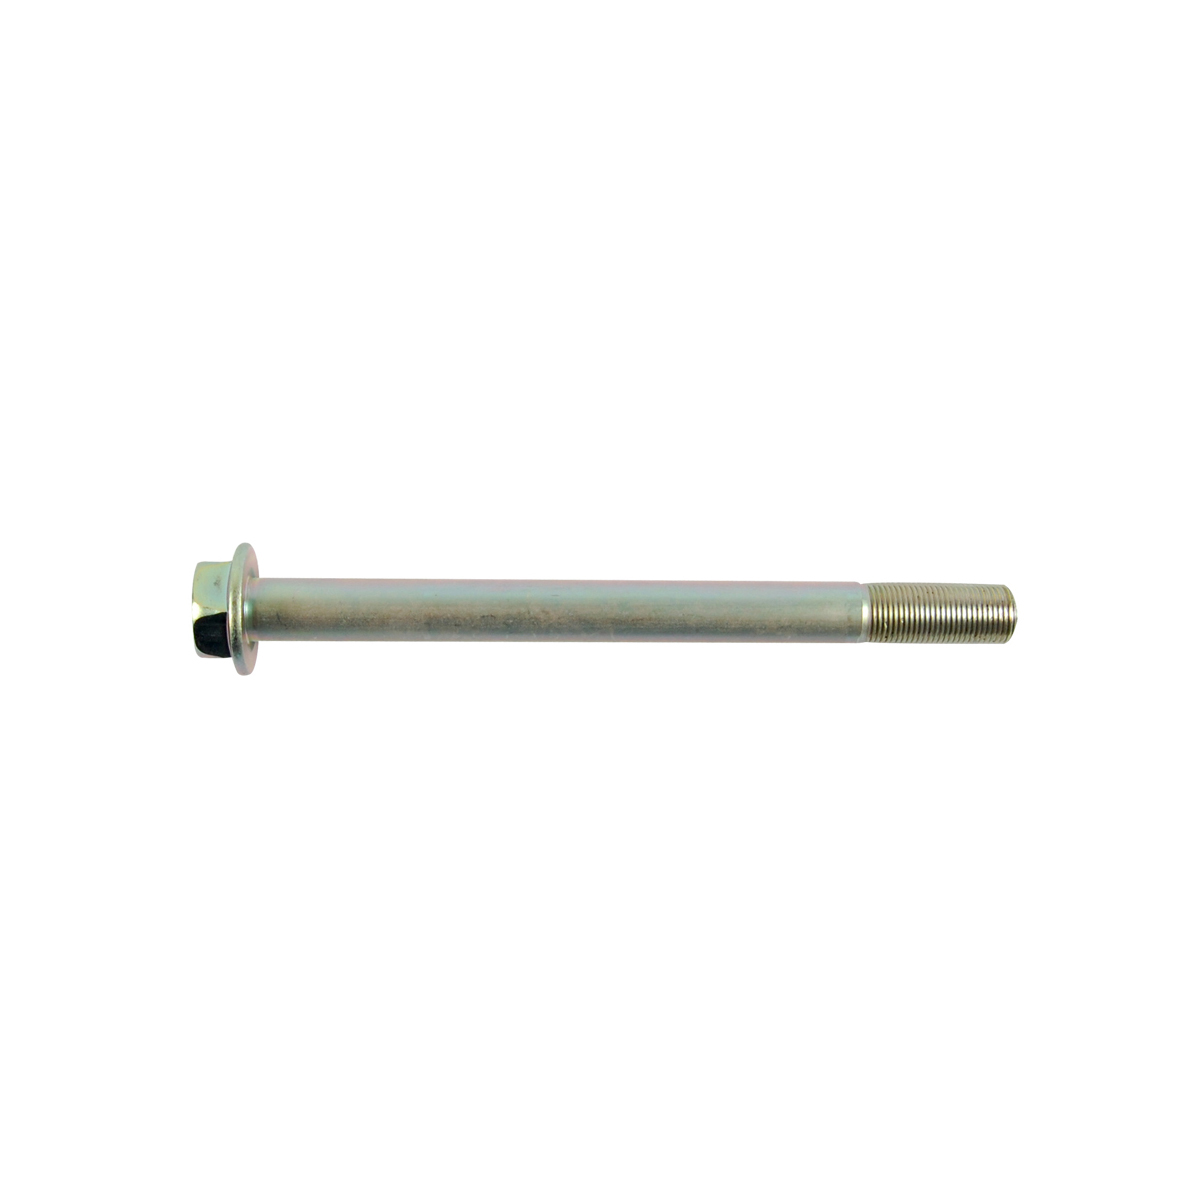 hex head cap screw 710-05388